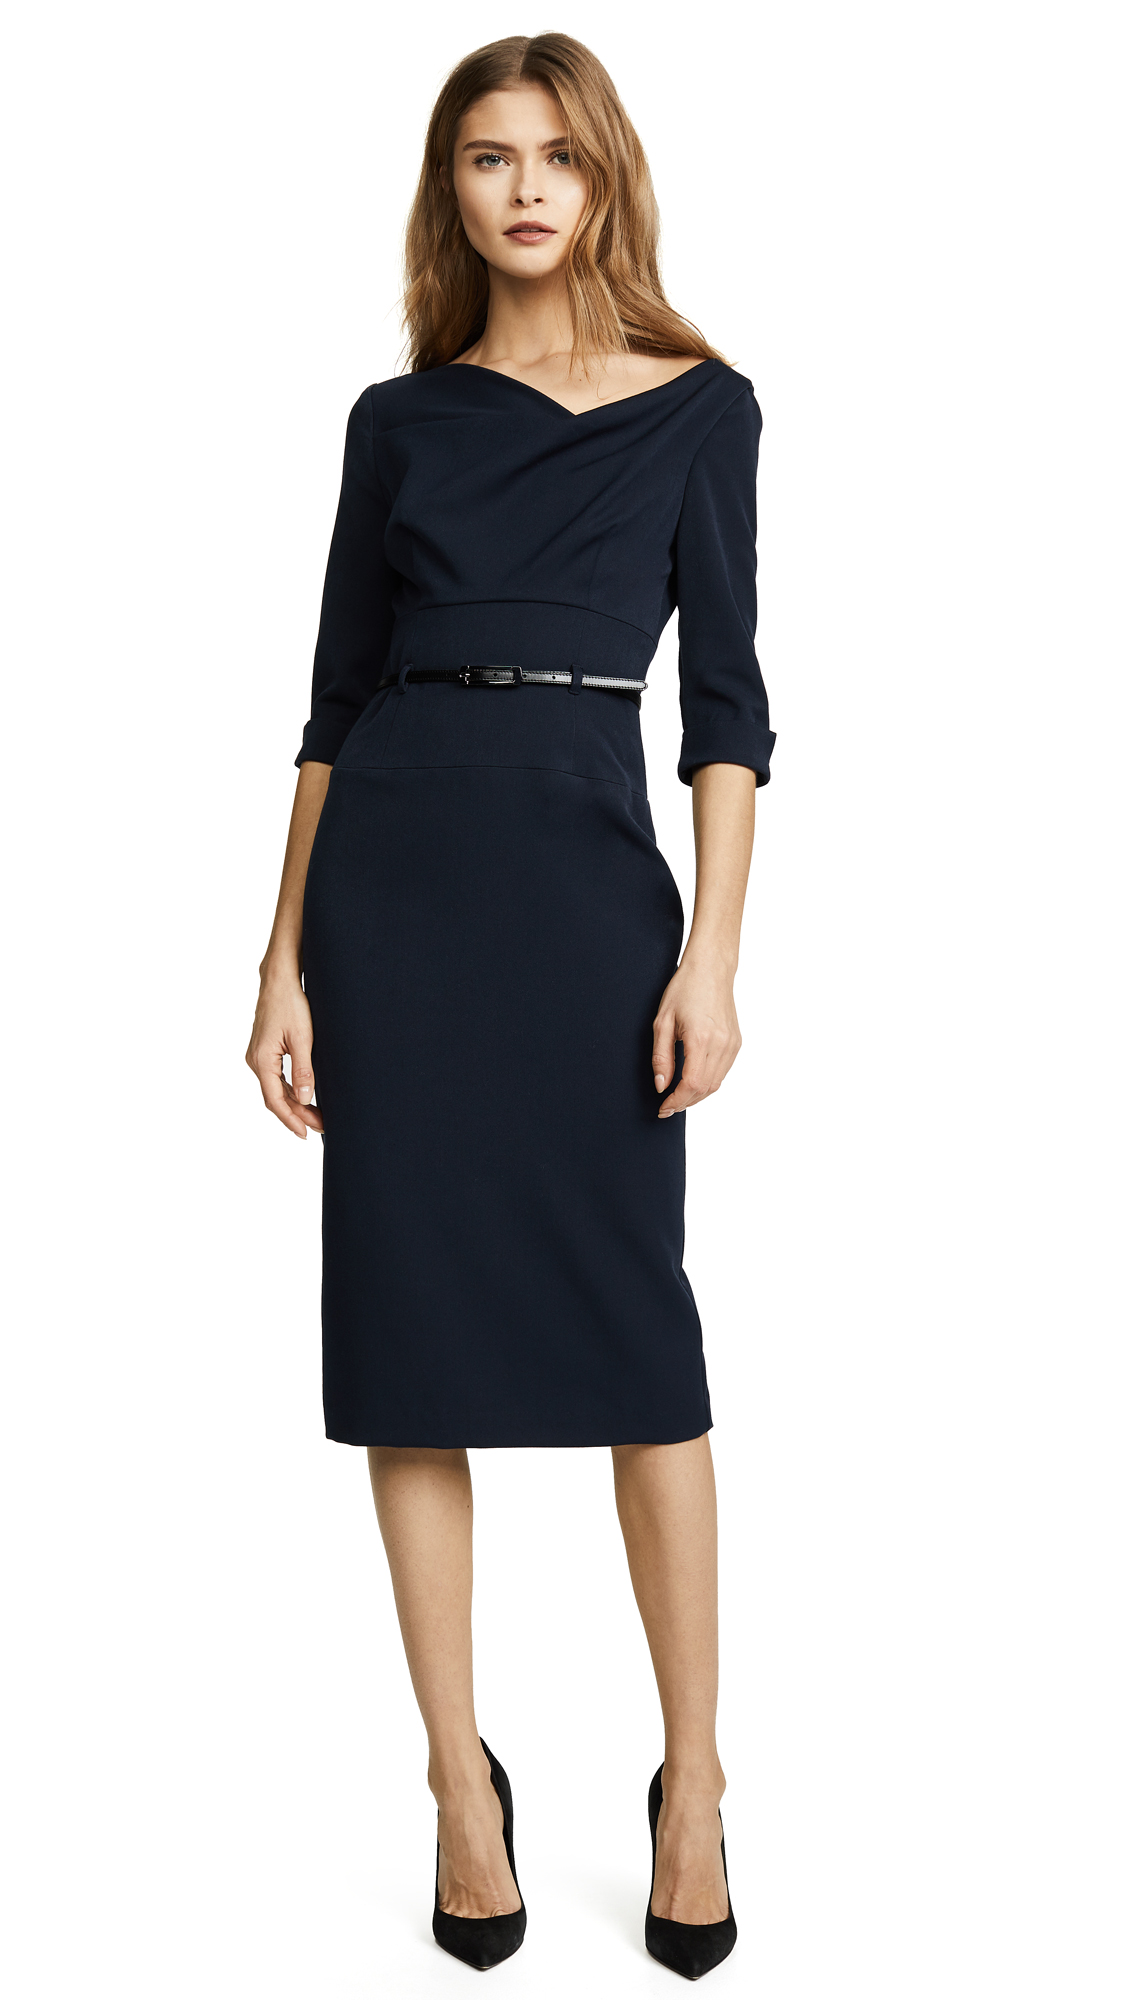 Black Halo 3/4 Sleeve Jackie O Dress - Eclipse